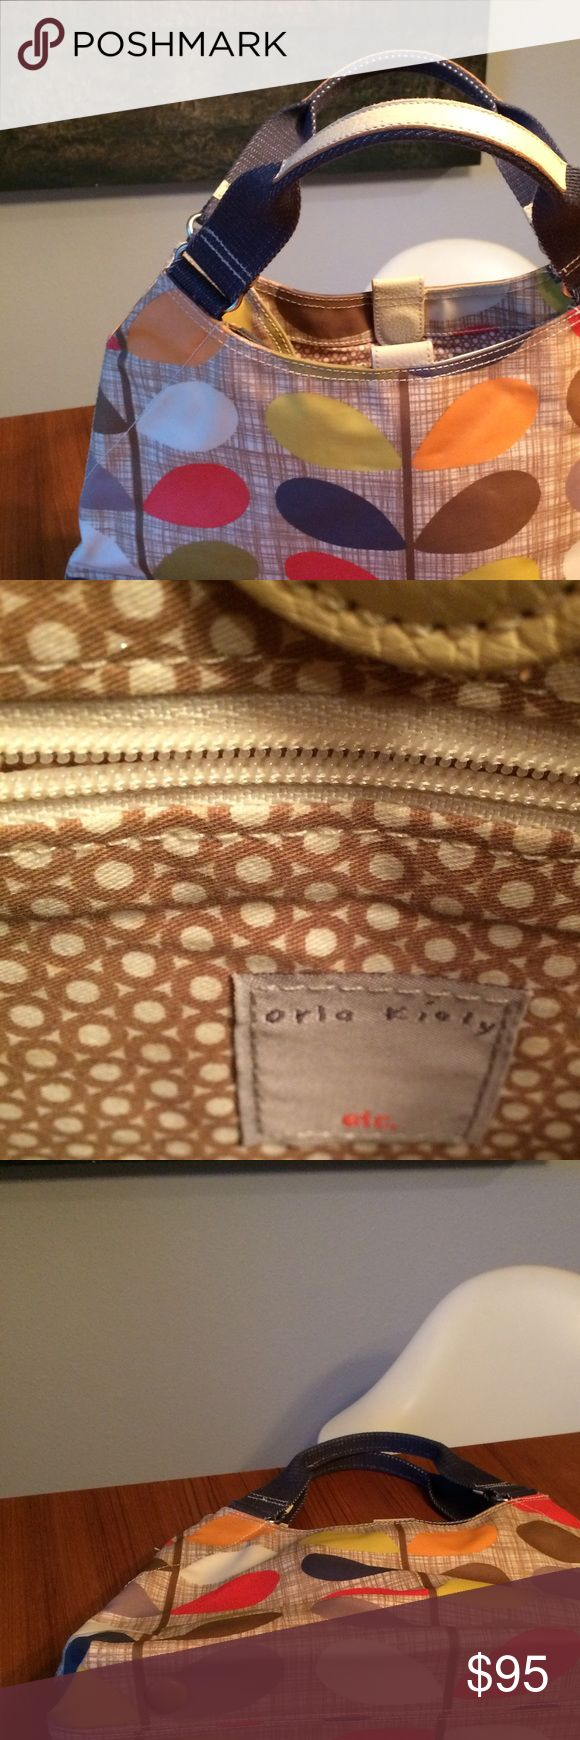 Orla Kiely purse like NEW Large hold all Sorry for the terrible pics. Poshmark is cropping my photos. I'll have to redo. Gorgeous Orla Kiely purse. Barely carried. Excellent condition. Orla Kiely Bags Totes